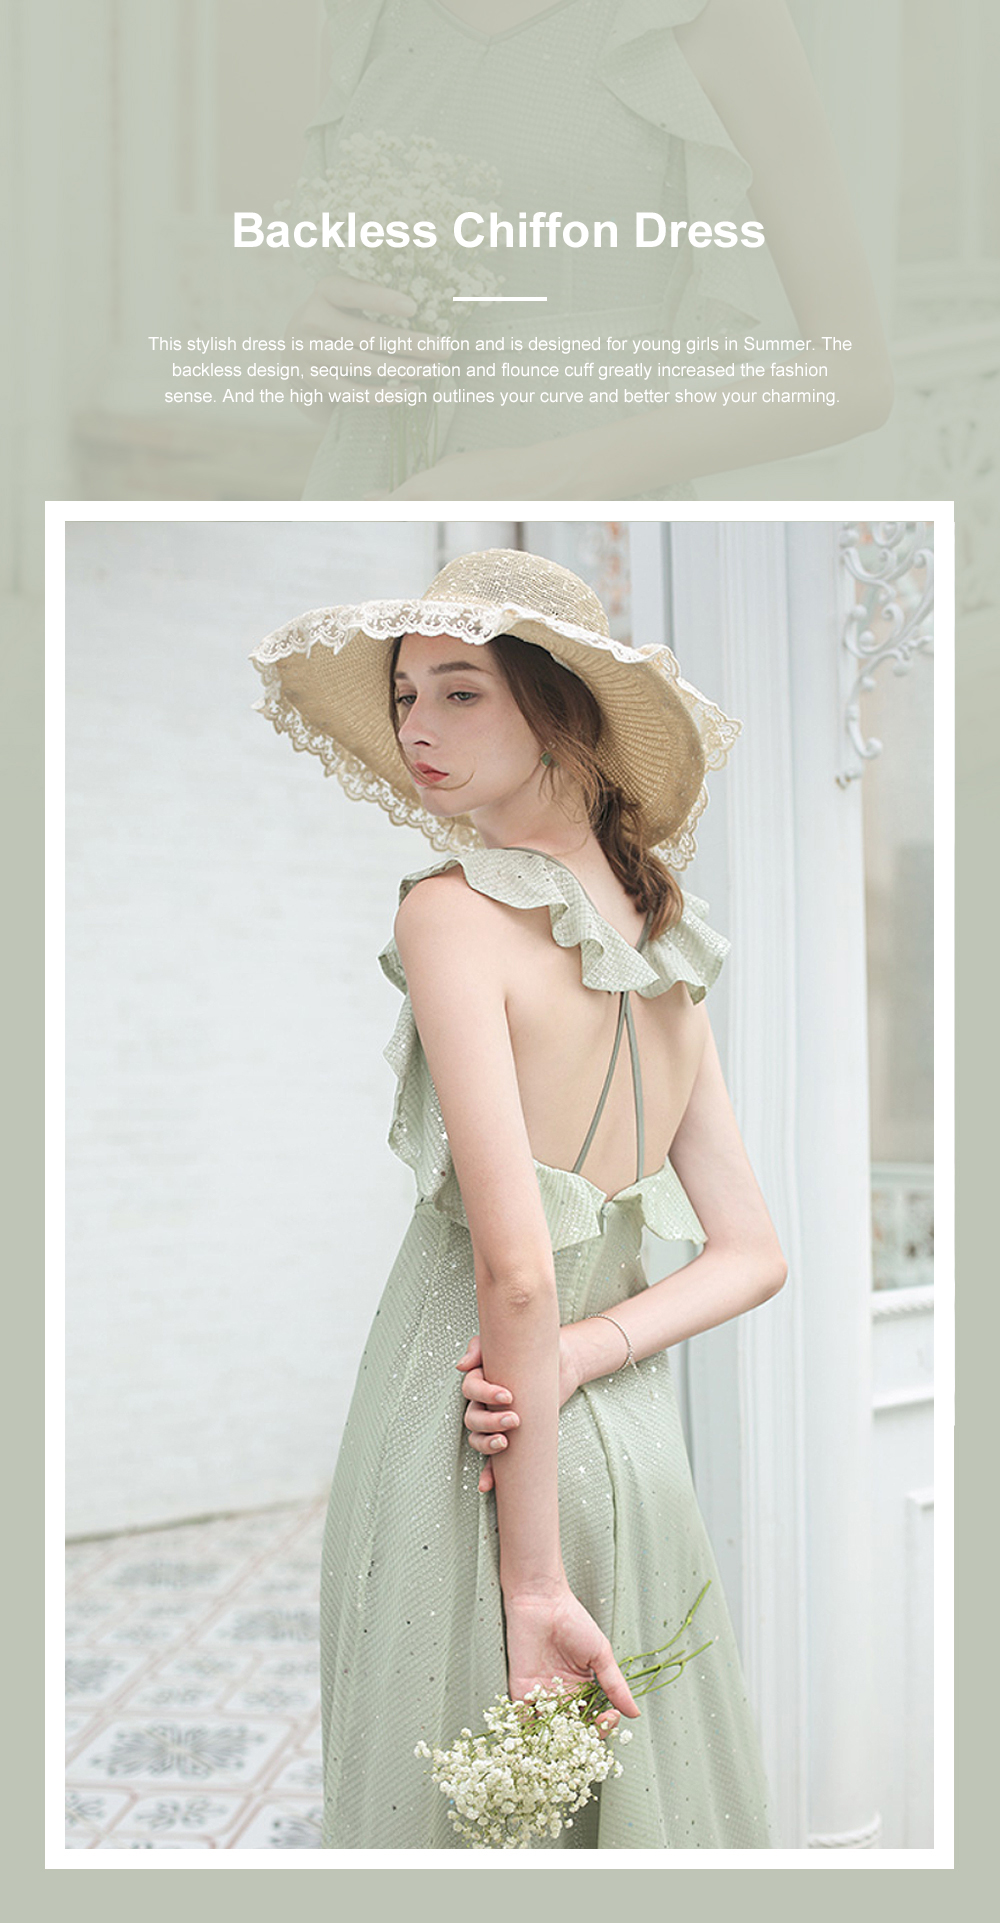 Long Chiffon Dress for 18-24 Years Girls Olive Green Backless Sequined Dress for Women Casual in Summer 0